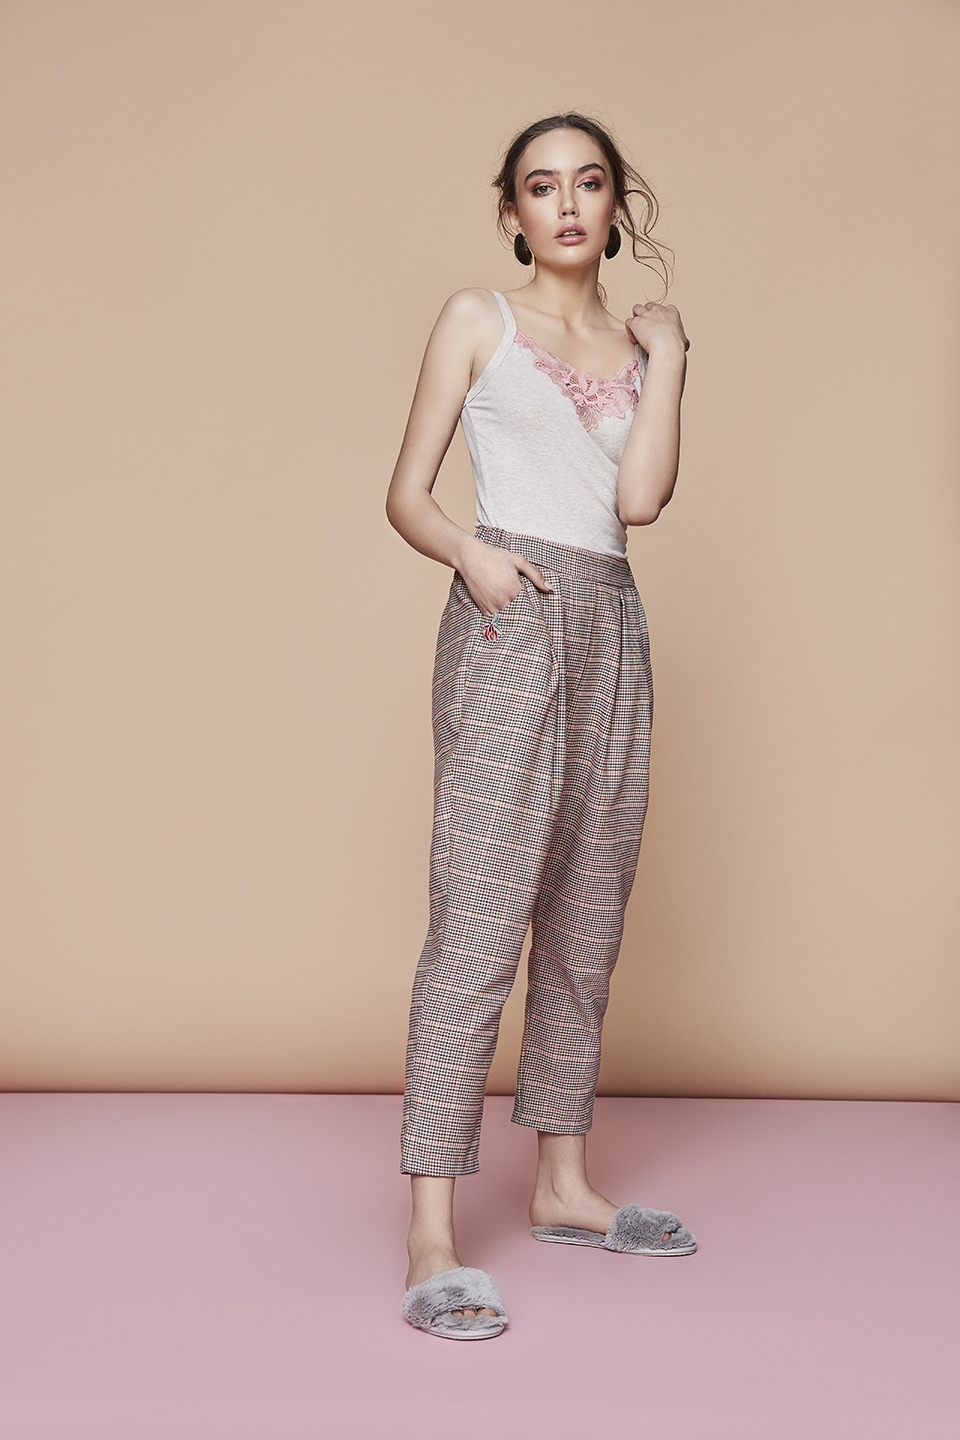 Atm OZ123 Camiciola<br />03 Dark Blue, 15 Beige, 67 Antique Rose<br />Girl Boss OZ124 Pantalone